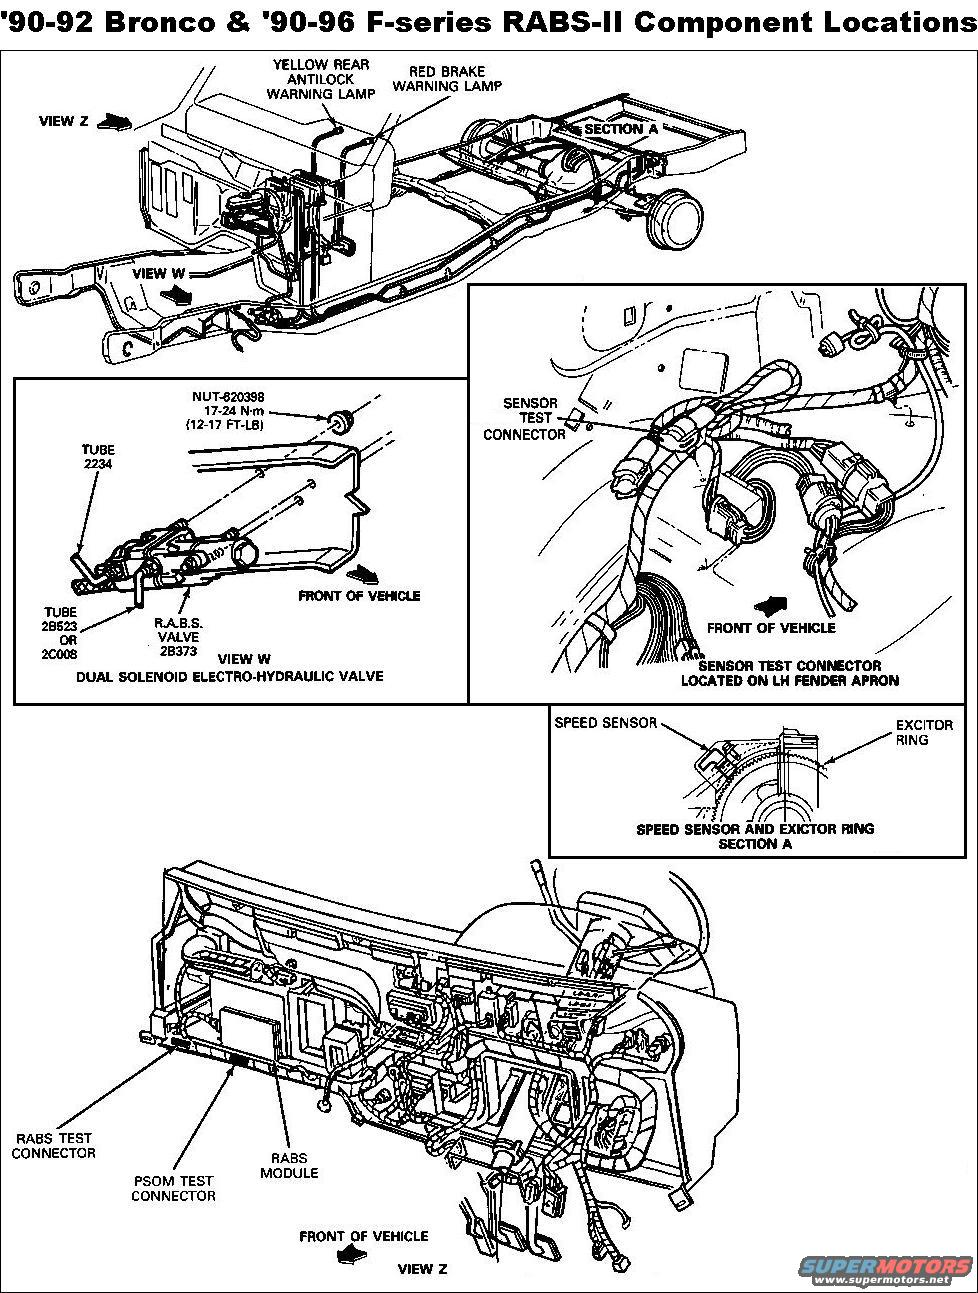 How To Retrieve Abs Trouble Codes Ford F150 Forum Community Of 1997 Wiring Diagram Rabs Troubleshooting Flow Chart Source By Steve83 Steve That Dirty Old Truck At Supermotorsnet